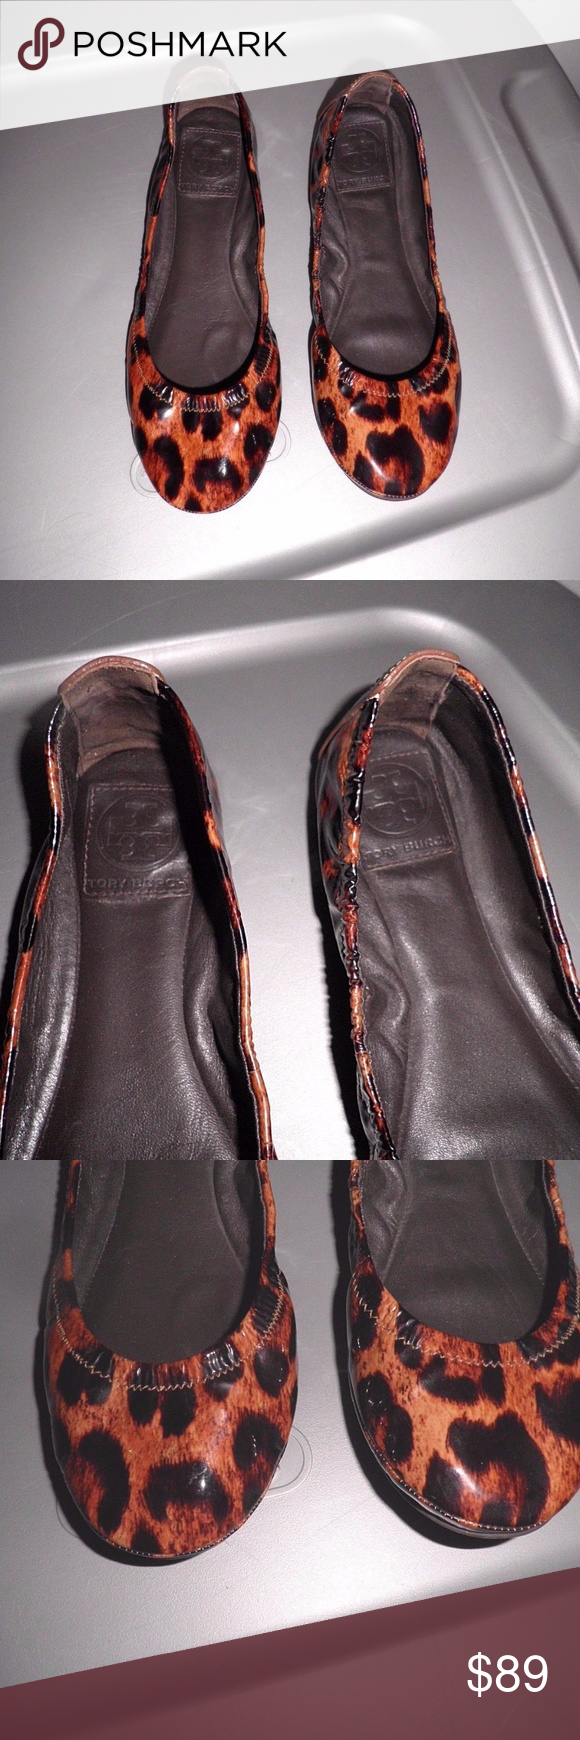 Tory Burch Eddie Leopard Print Patent Leather Flat Must have Tory Burch flats! The leopard print just works so well with so many looks! Rich looking patent leather. In very good condition.  ATGO/GW Tory Burch Shoes Flats & Loafers